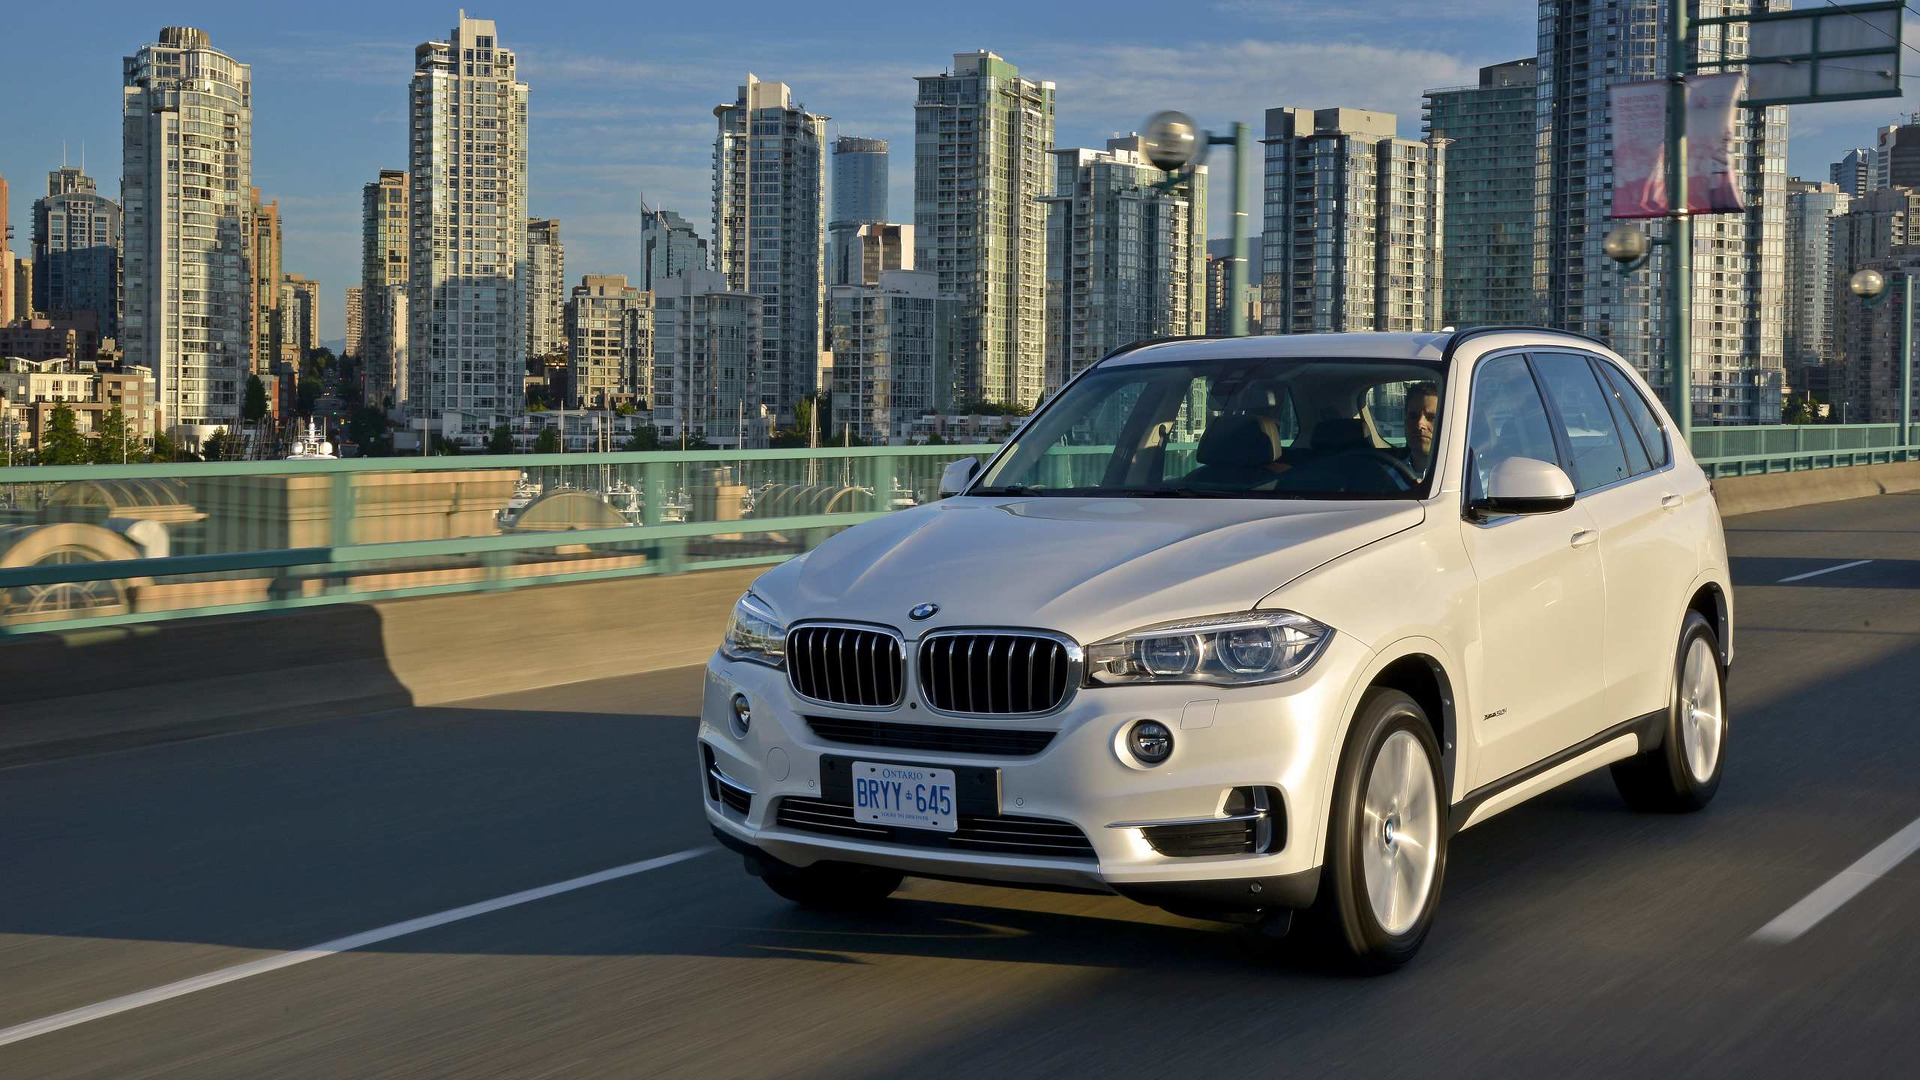 2013 bmw x5 review posh and capable but old voltagebd Gallery